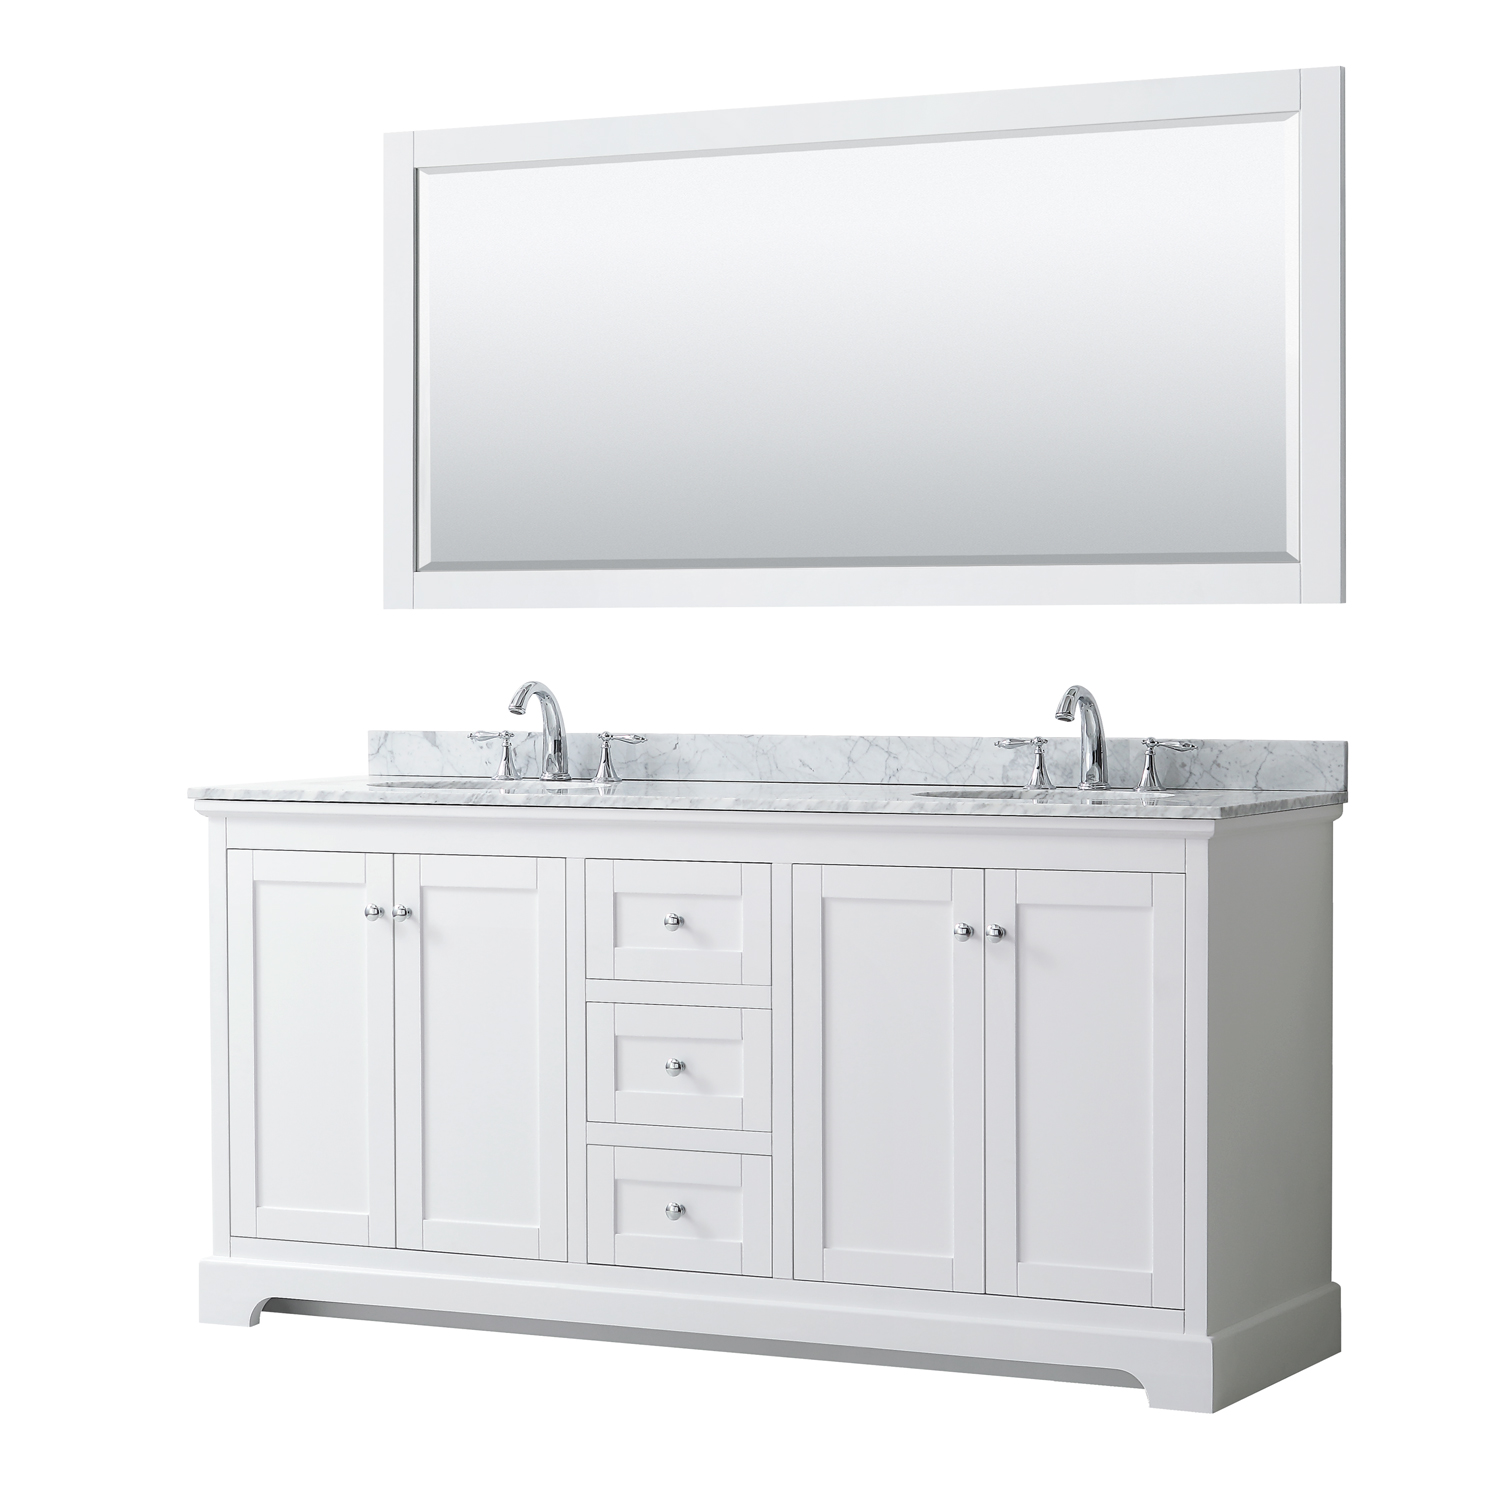 Avery 72 Double Bathroom Vanity By Wyndham Collection White Free Shipping Modern Bathroom